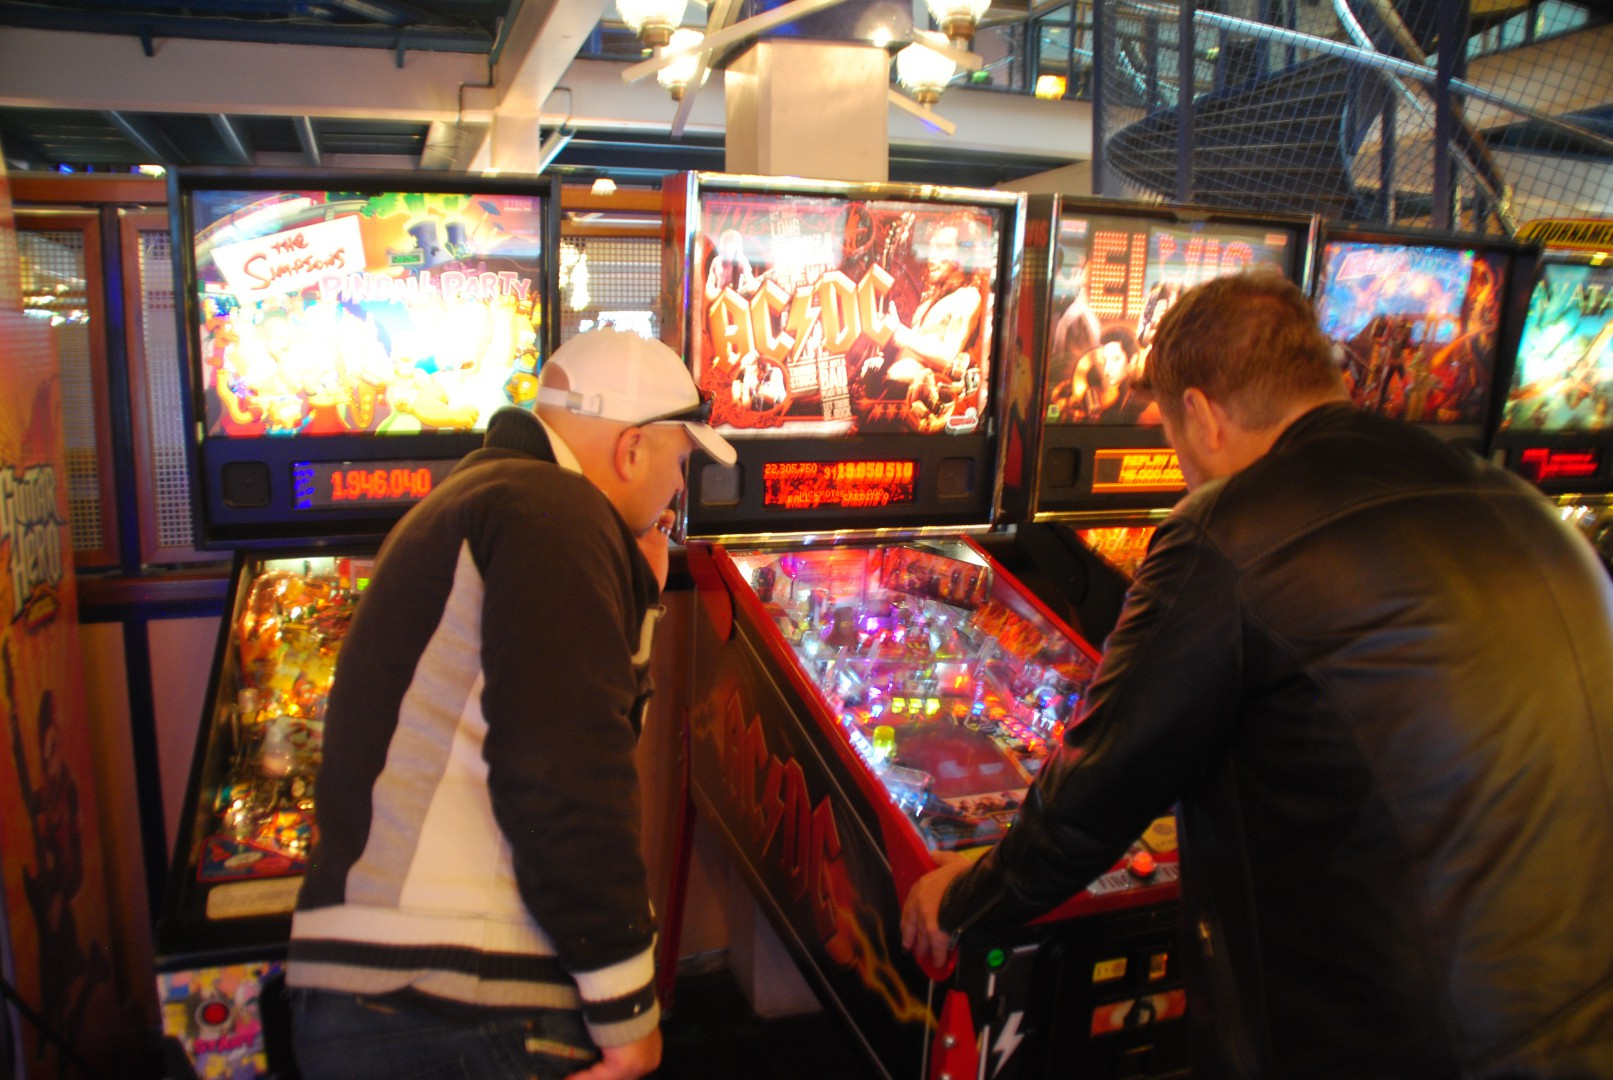 AC/DC PINBALL and The Simpsons Pinball / At Liseberg Fun Fair